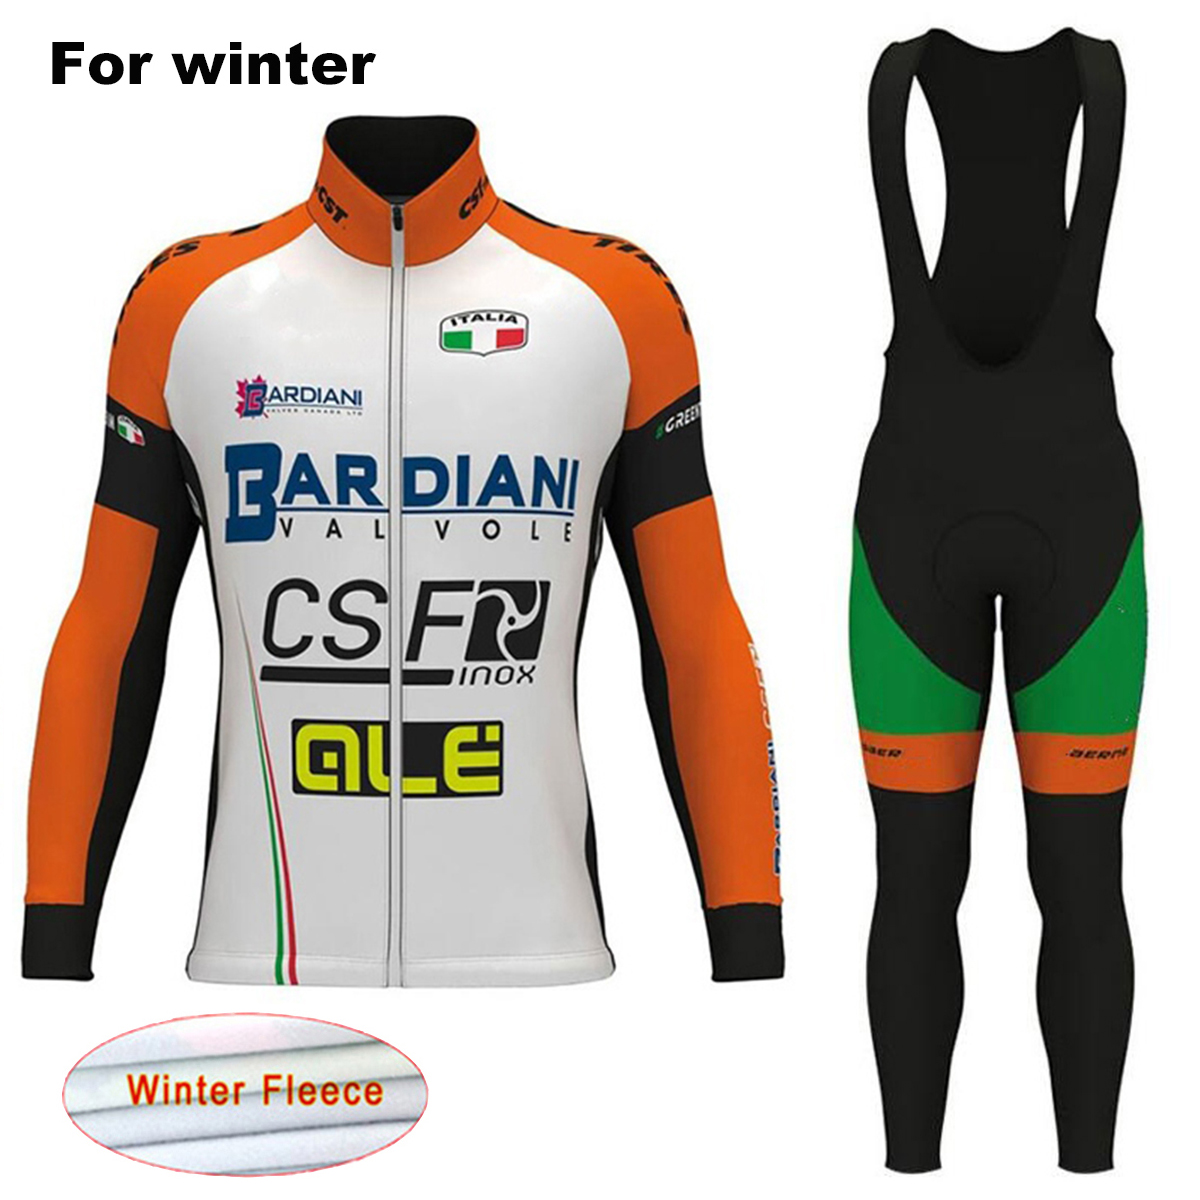 2017 ALE Winter Pro Team Bicycle Jerseys Set BARDIANI Men`s Thermal Fleece Bike Clothes Cycling Clothing Ropa Maillot Ciclismo st peter s golden ale